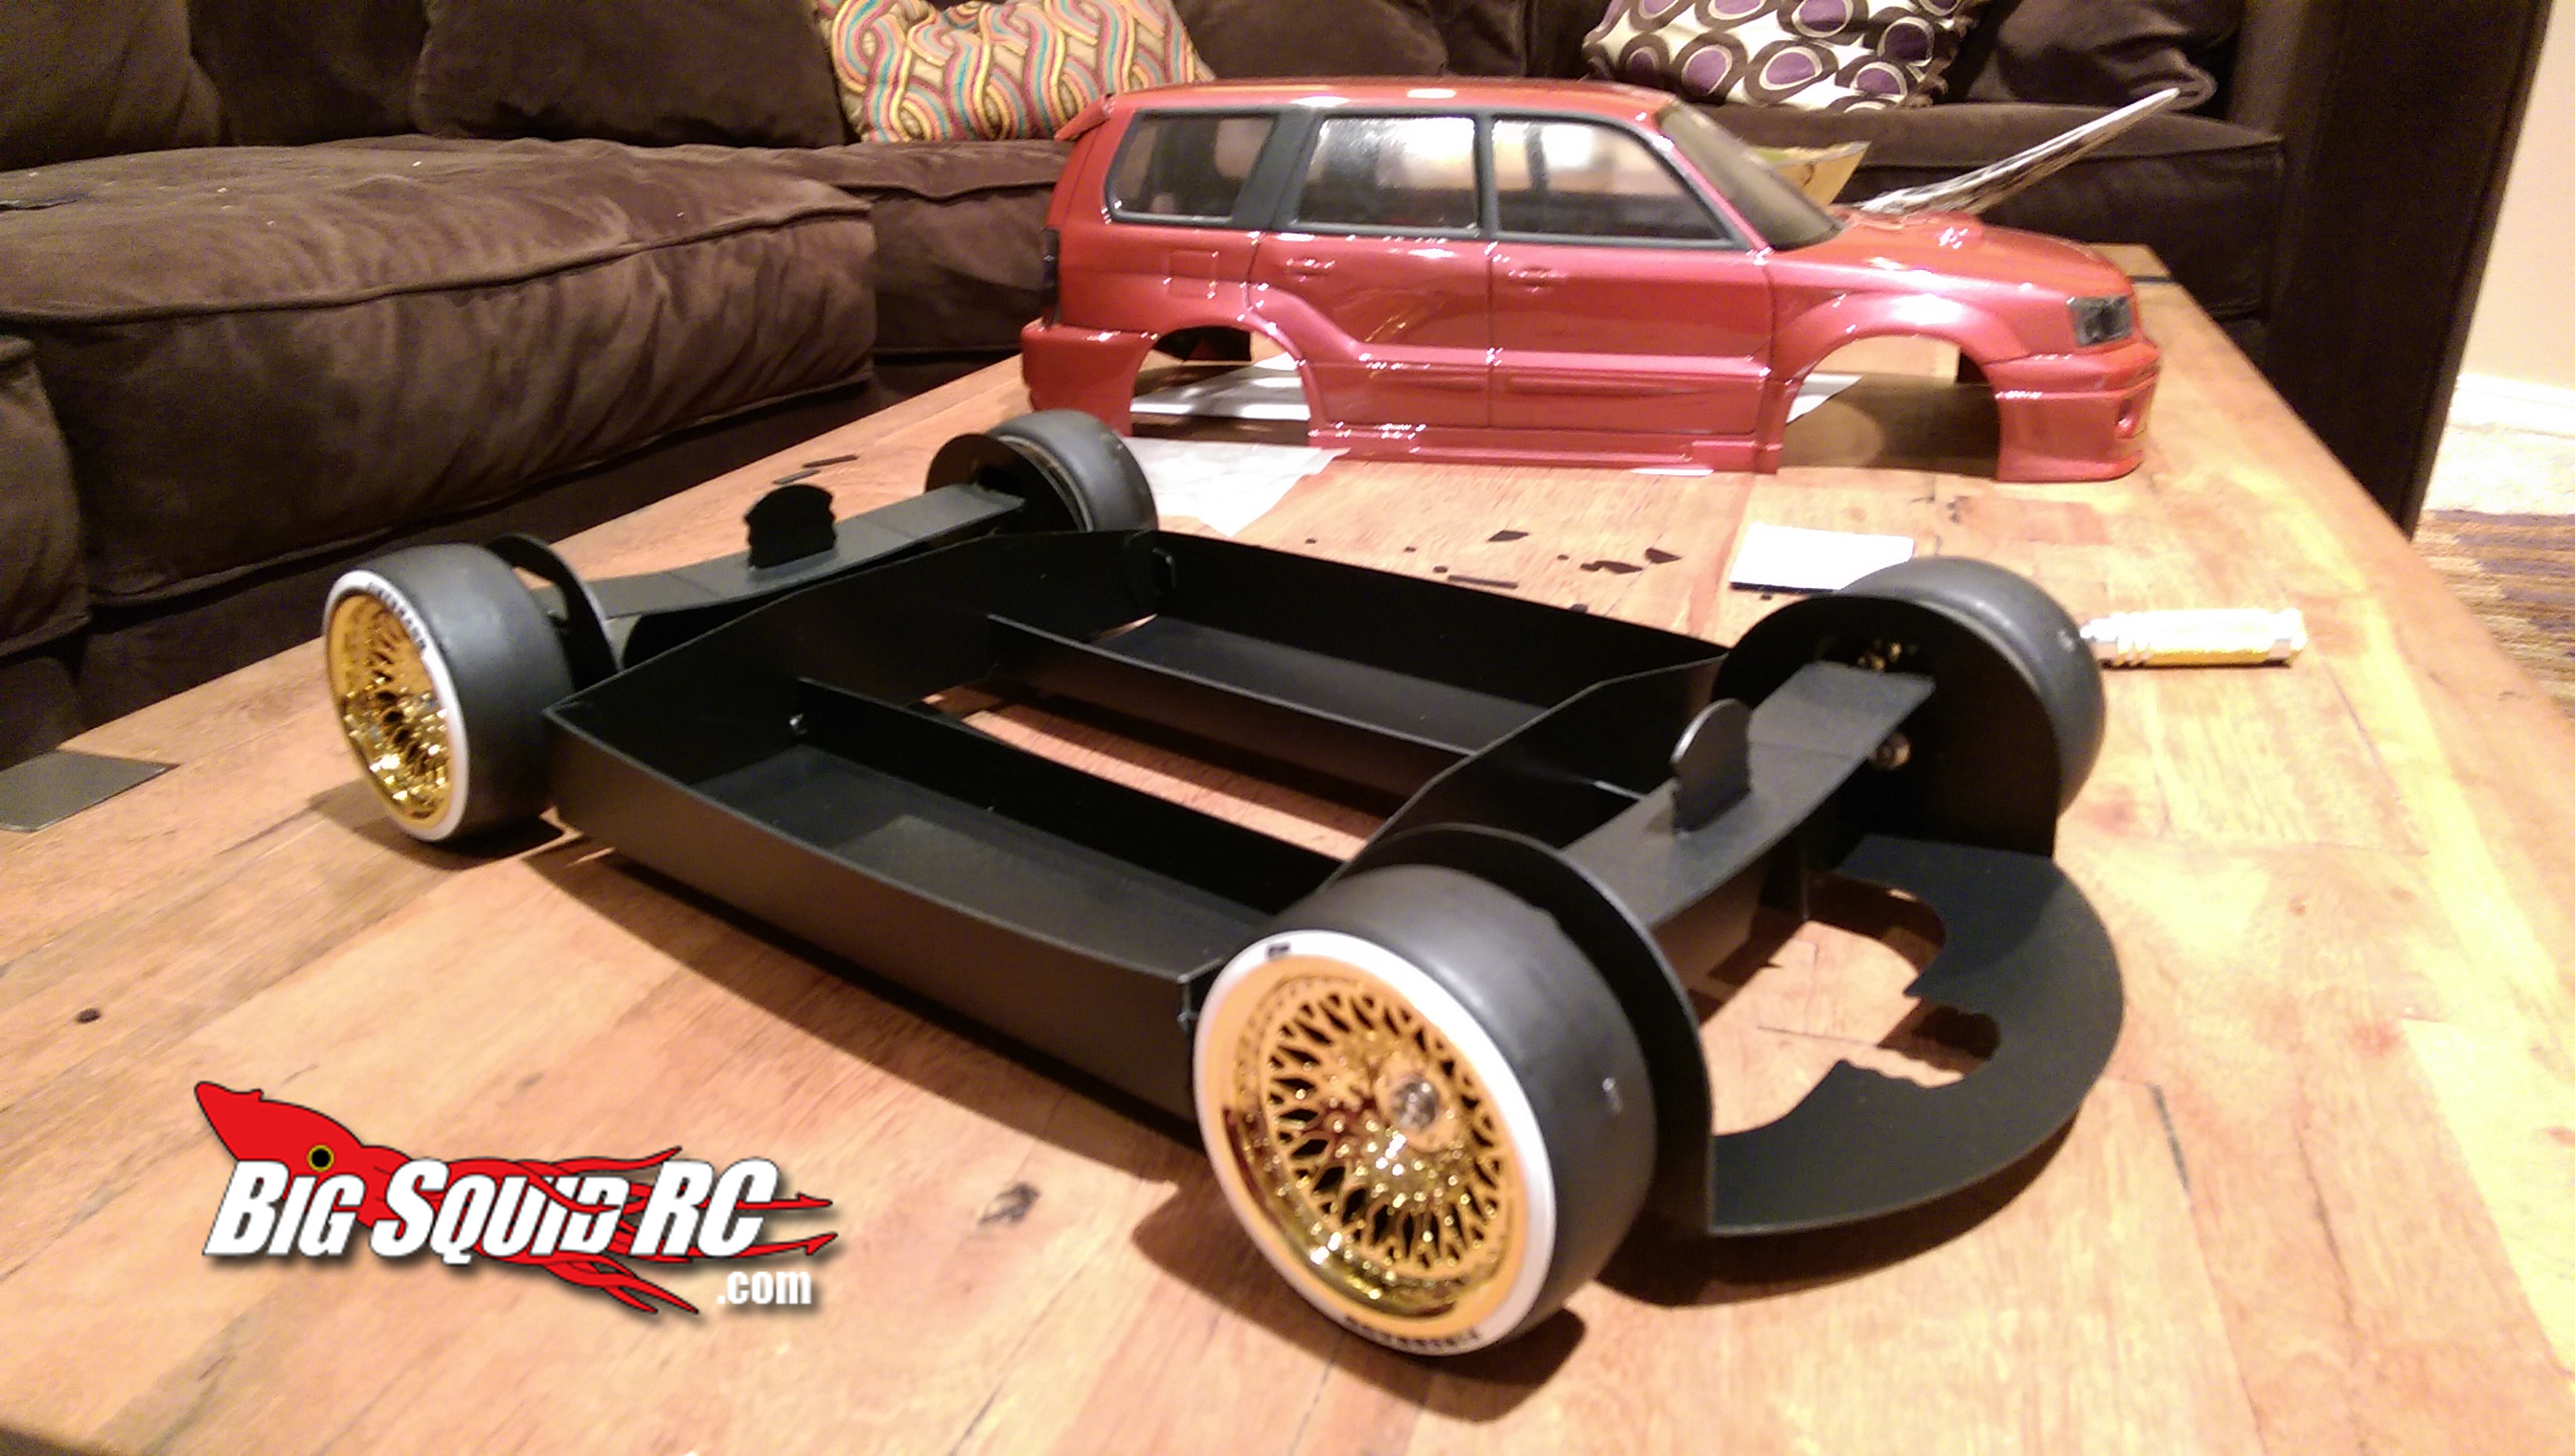 Firebrand Rc Showoff Rc Body Display Stand Review 171 Big